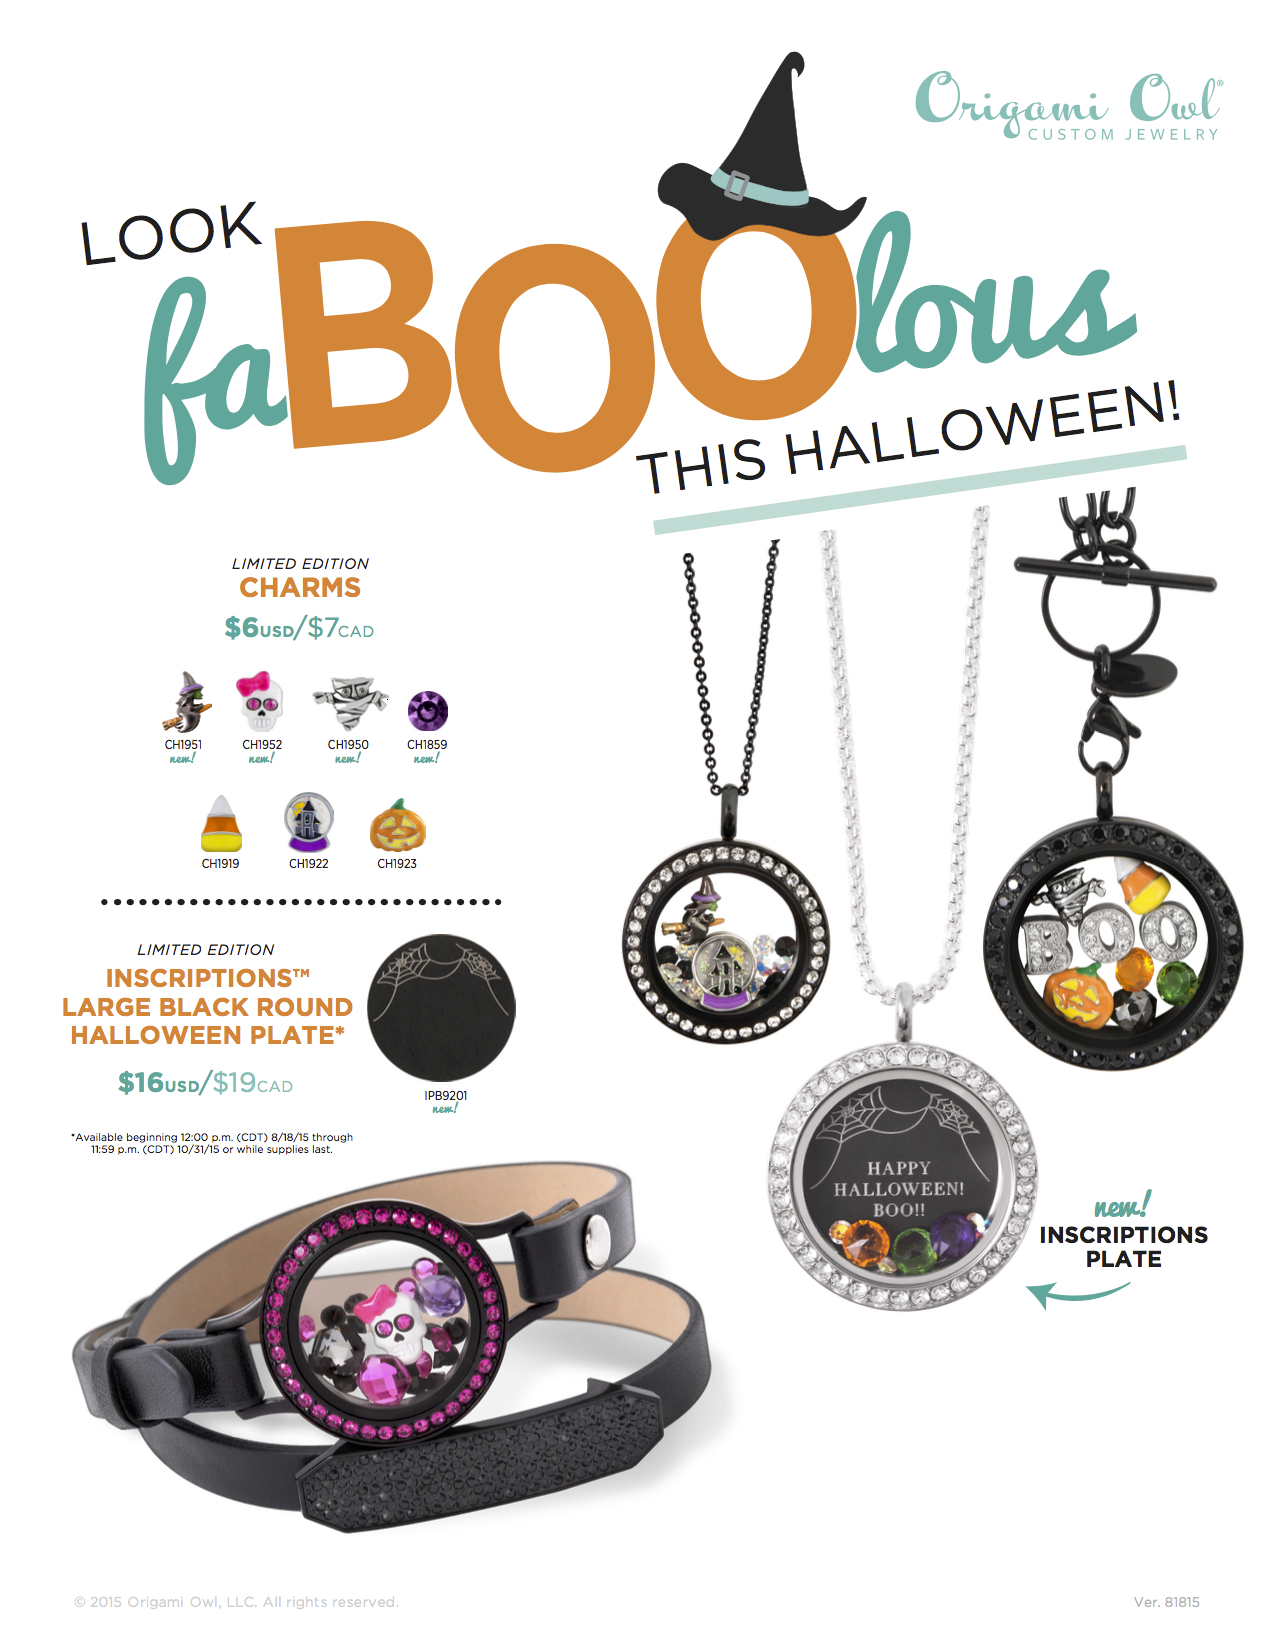 83 Best Origami Owl® Spring/Summer 2015 Collection images ... | 1650x1275